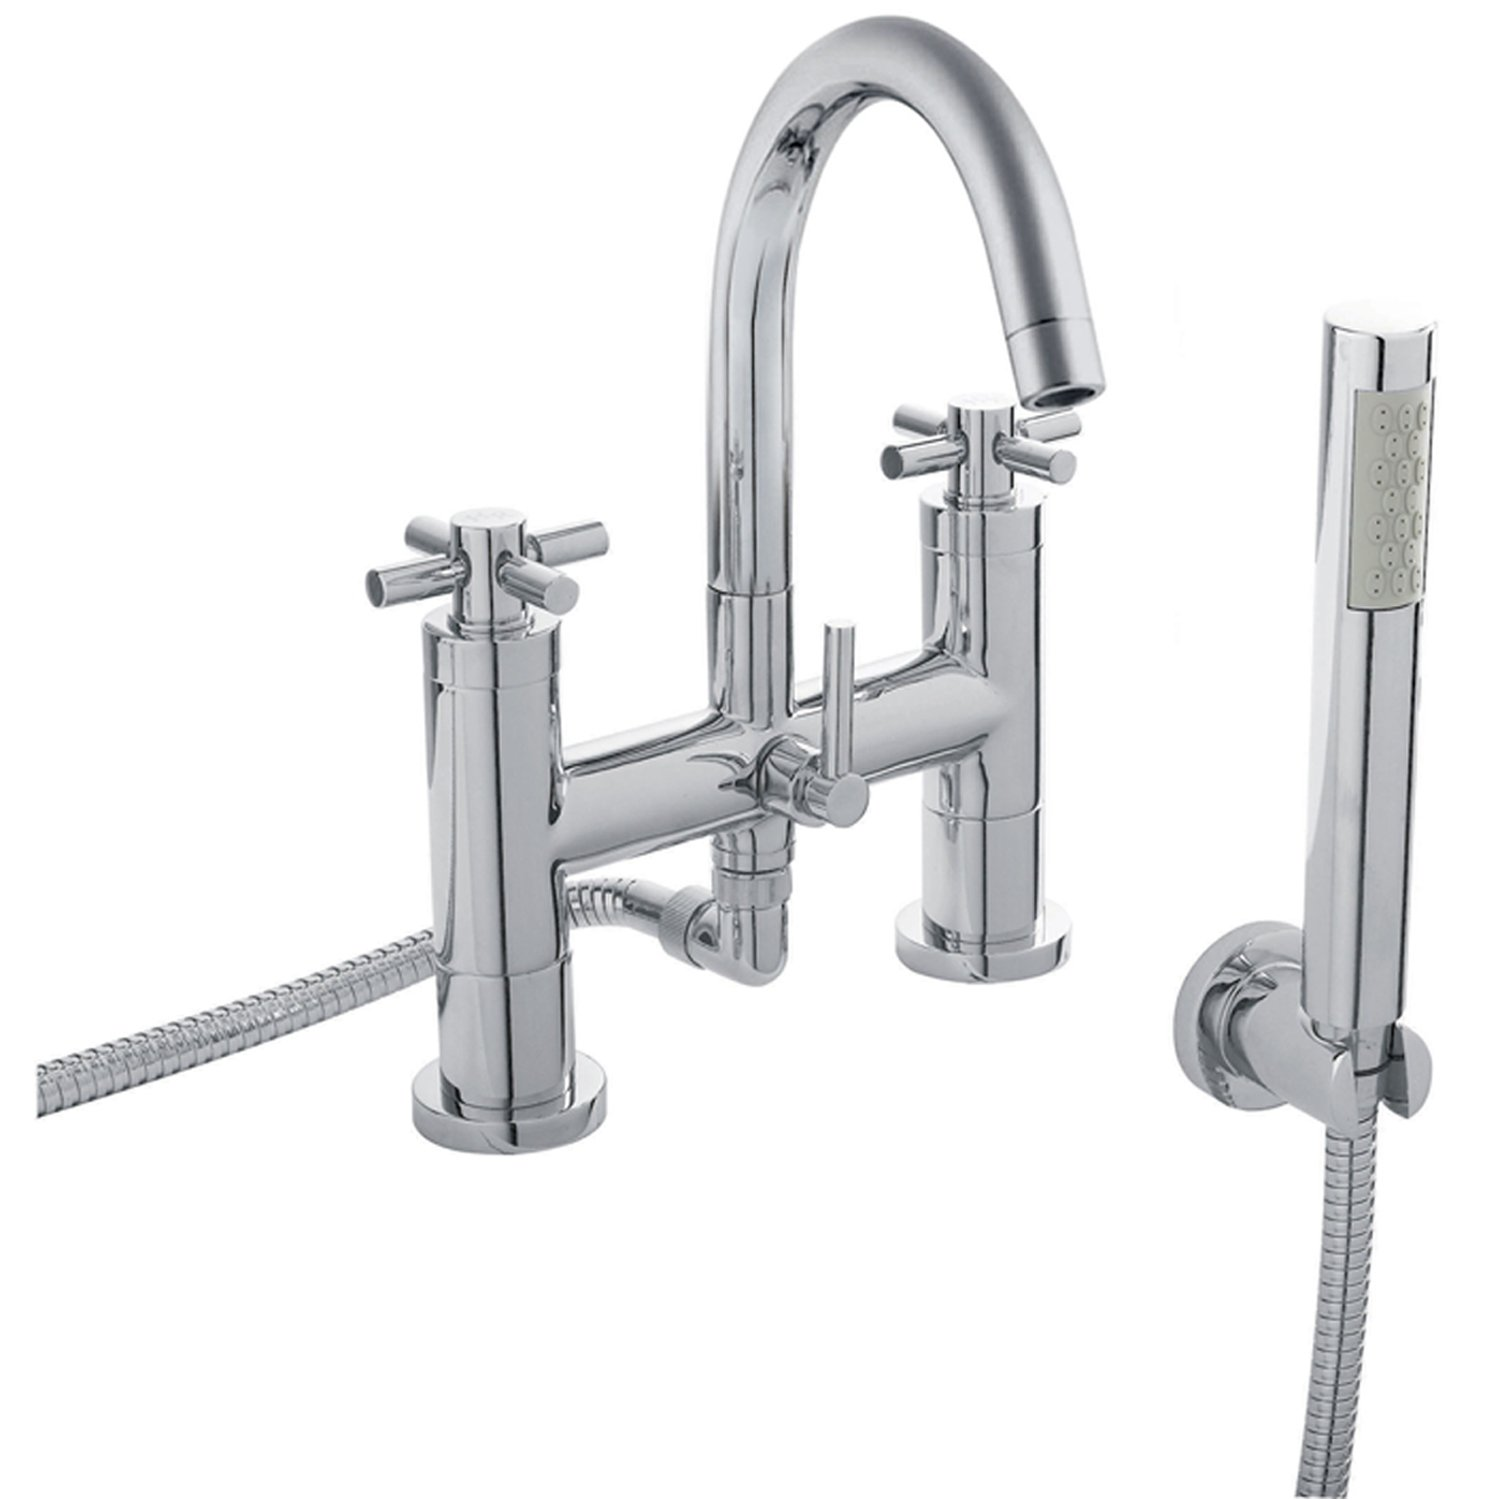 Hudson Reed Tec Crosshead 3 Hole Basin Mixer Tap and Bath Shower Mixer Tap, Chrome-0